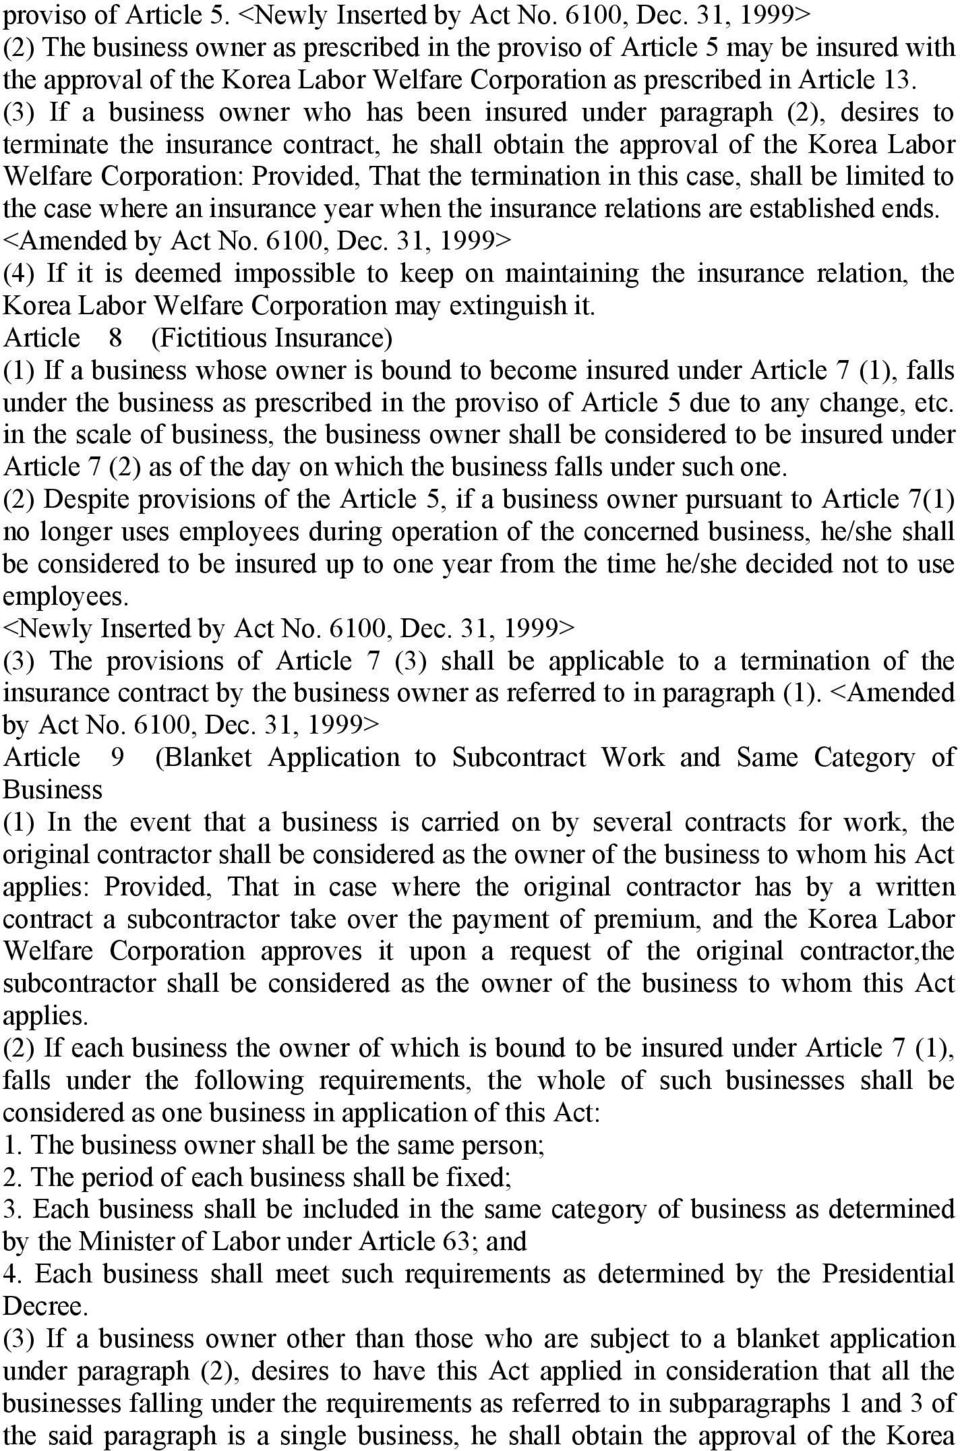 (3) If a business owner who has been insured under paragraph (2), desires to terminate the insurance contract, he shall obtain the approval of the Korea Labor Welfare Corporation: Provided, That the